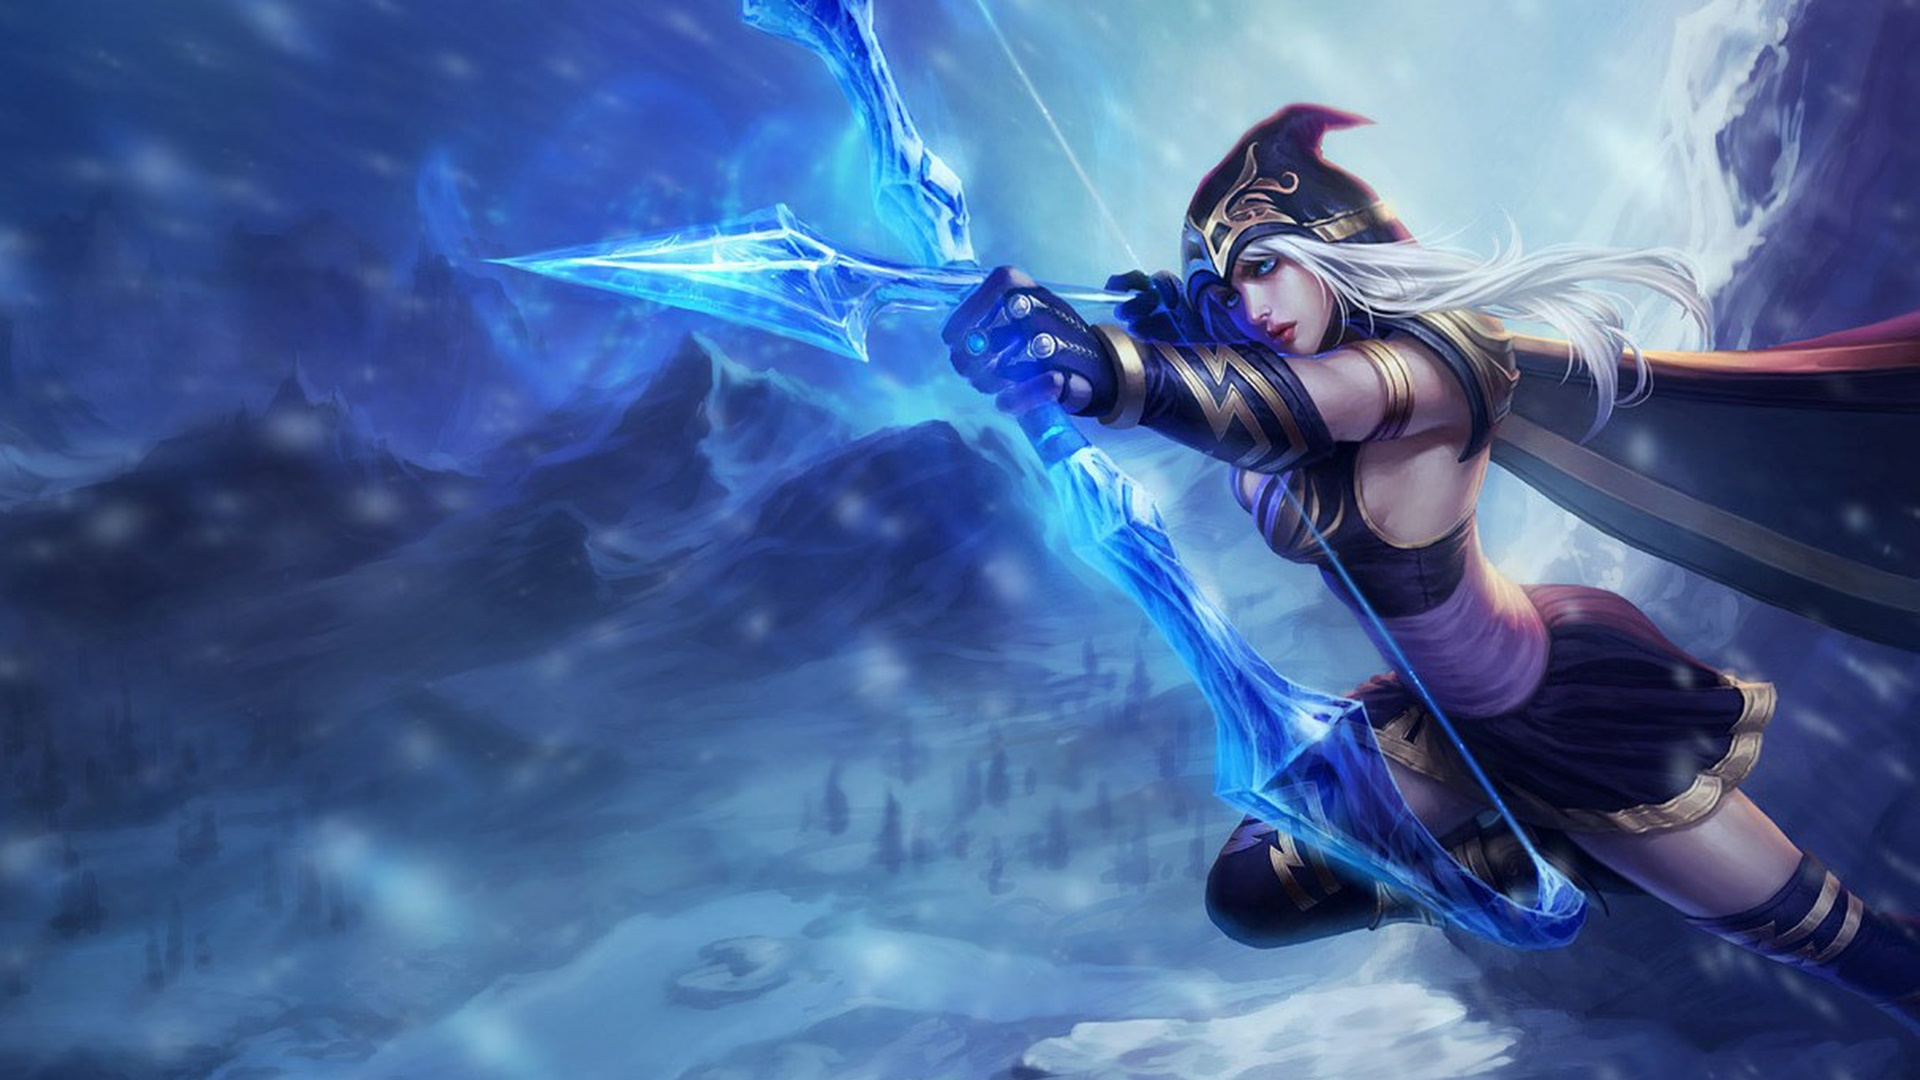 Teamfight Tactics League of Legends Ranked Mode Details